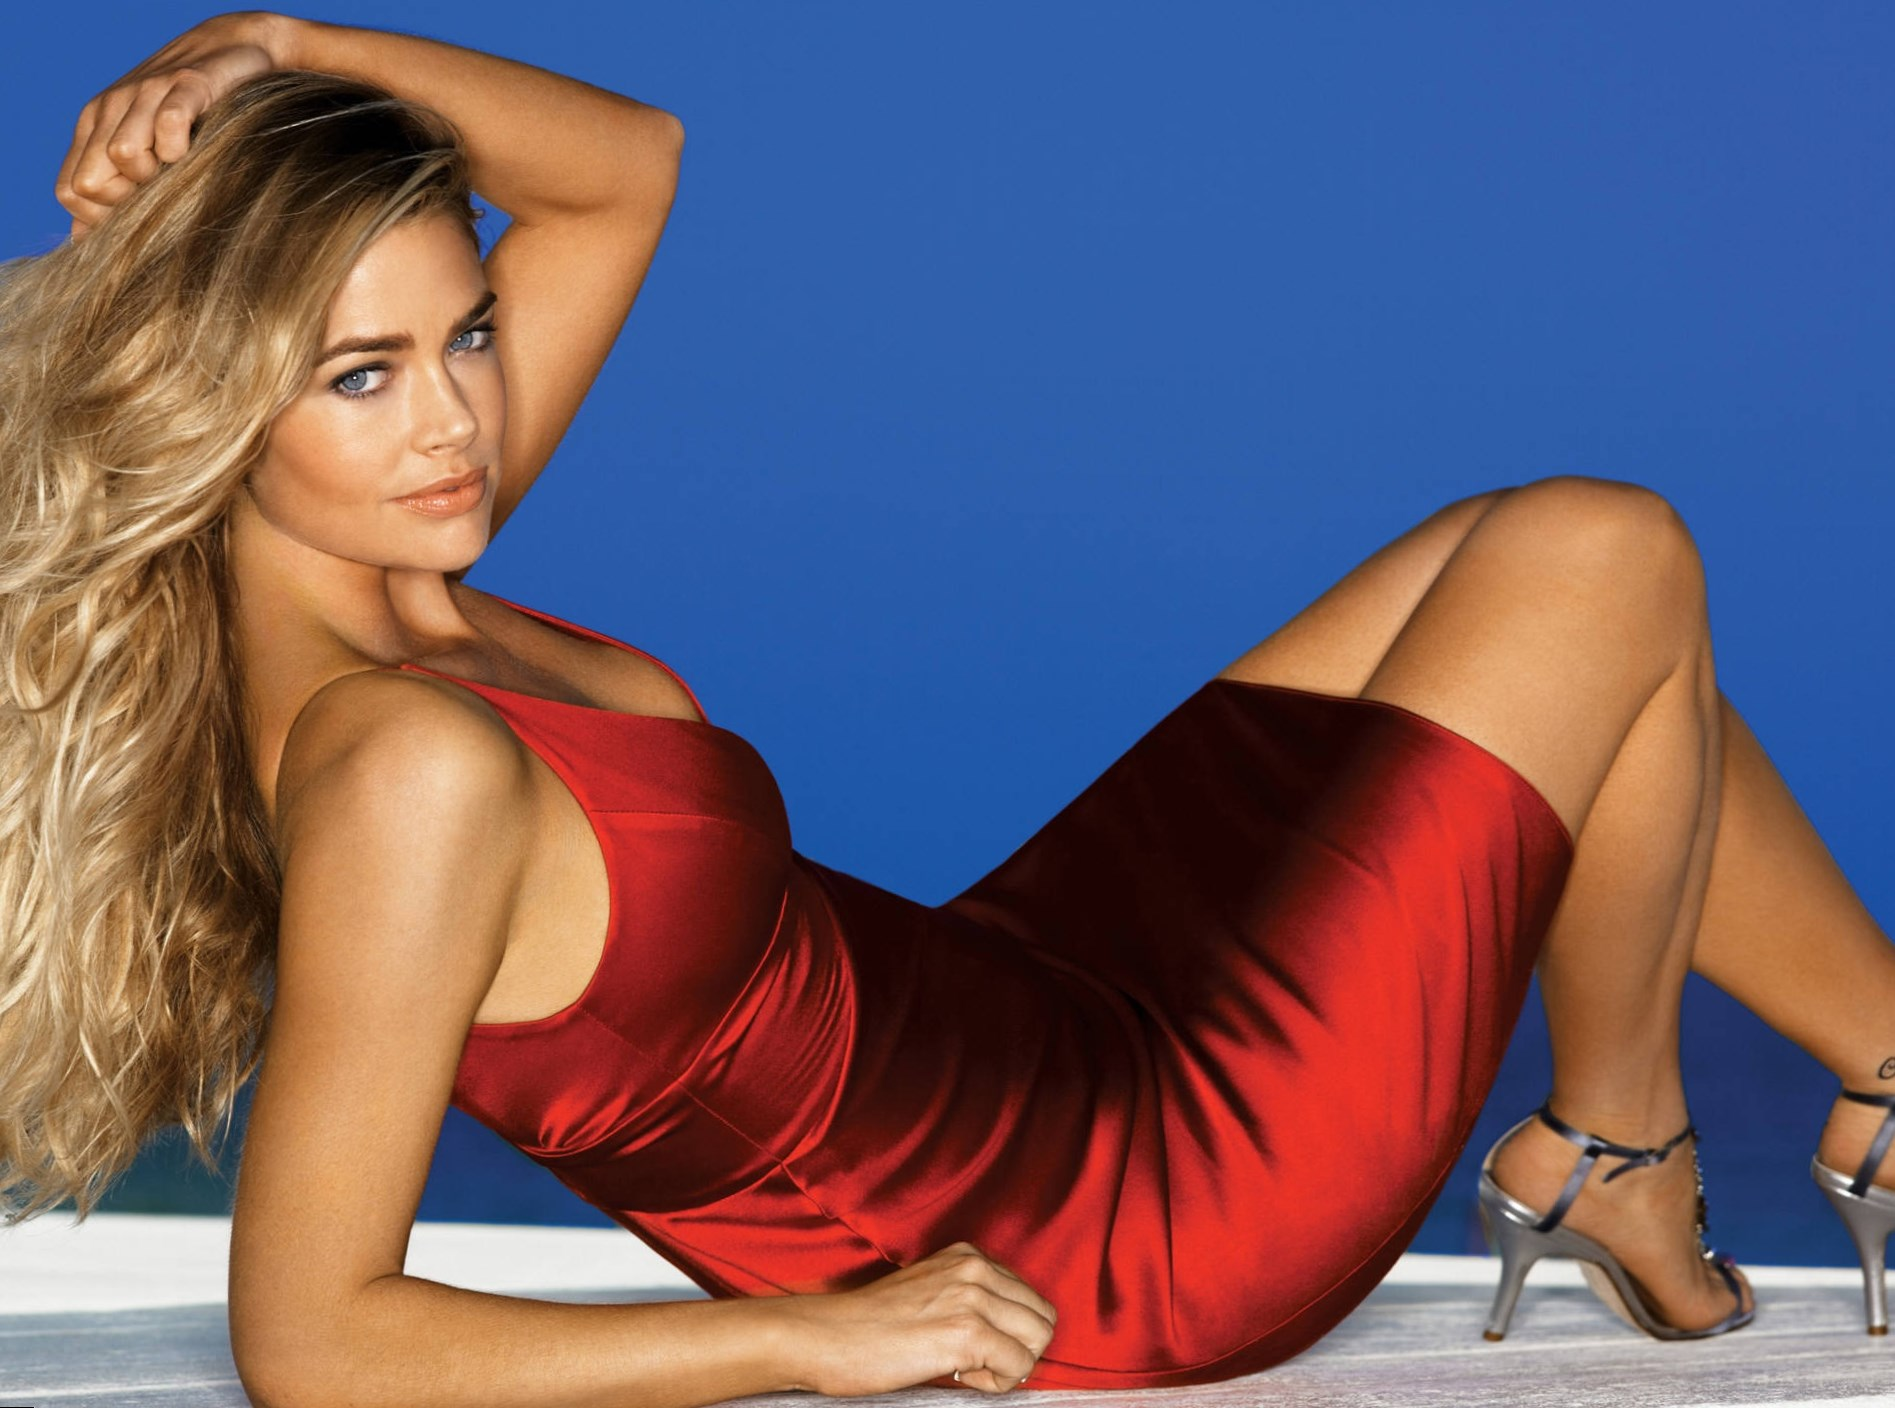 Denise Richards porno énorme bite image